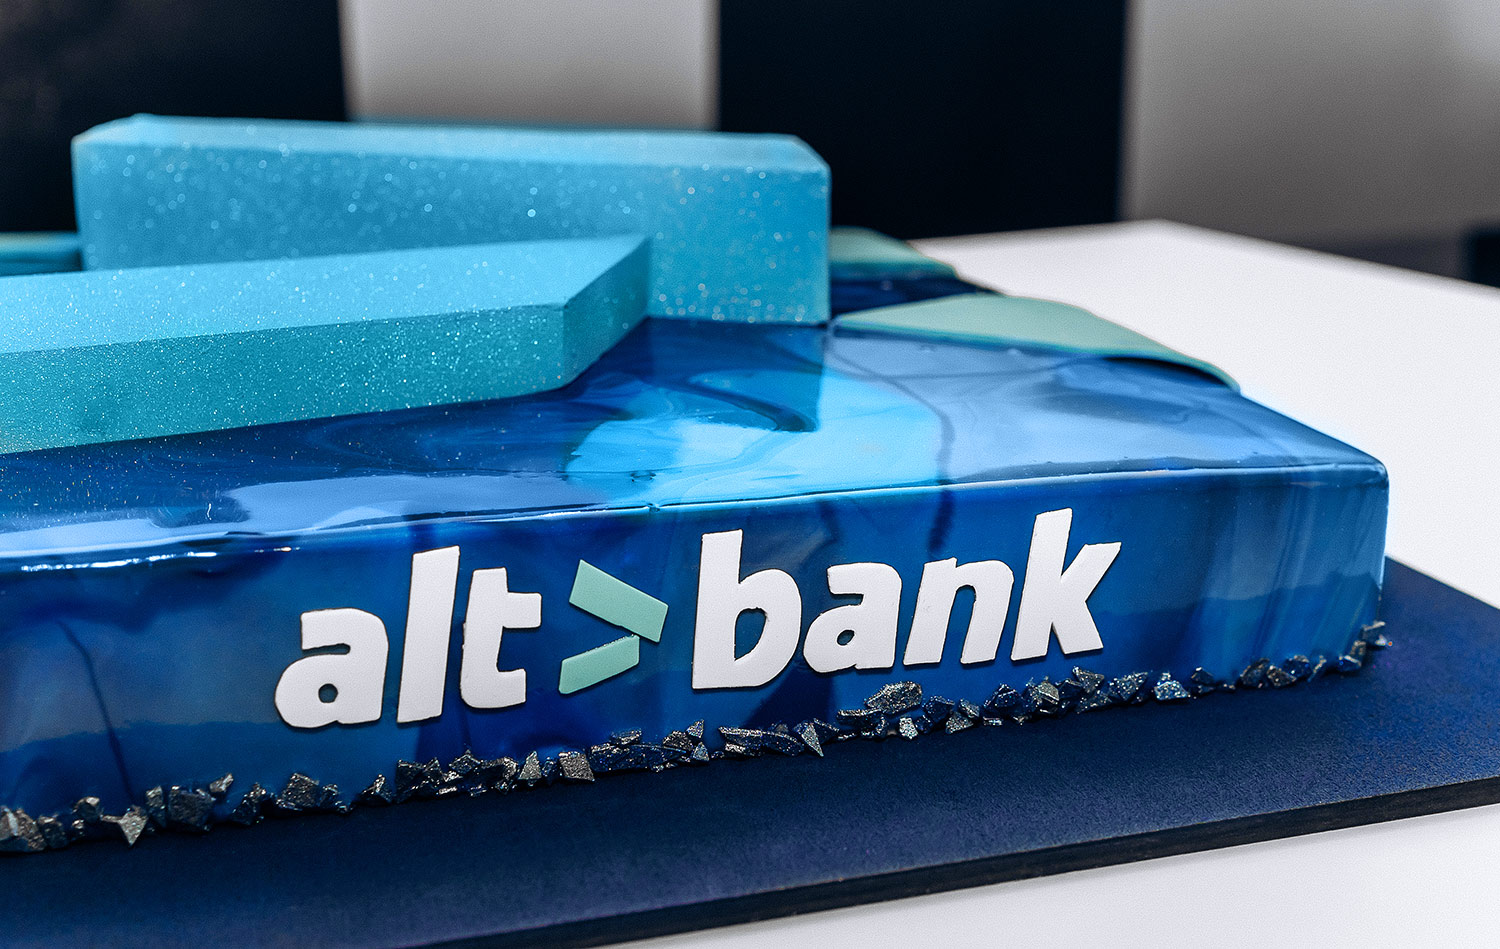 An exclusive cake for bank birthday.